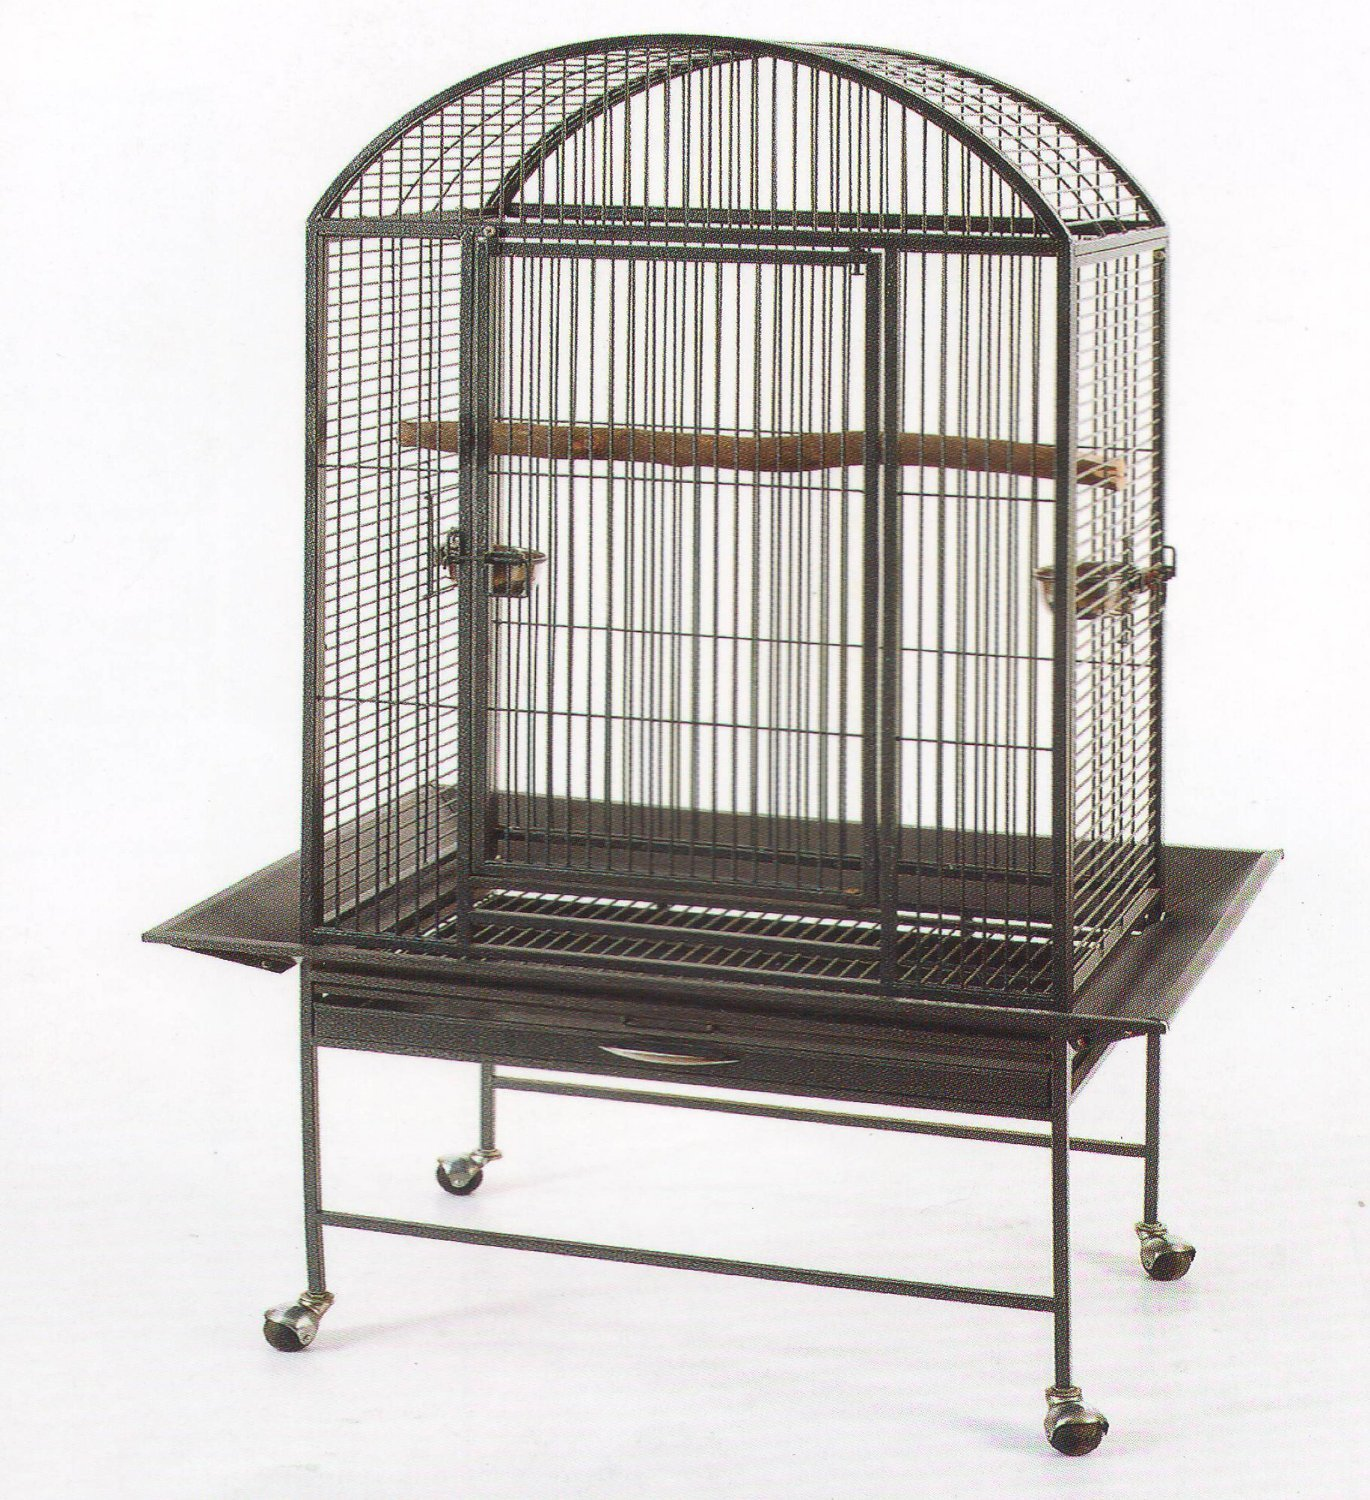 2 Color, New Large Wrought Iron Bird Parrot Finch Macaw Cockatoo Cage Dome Top; 28 x 20 x 61H Mcage